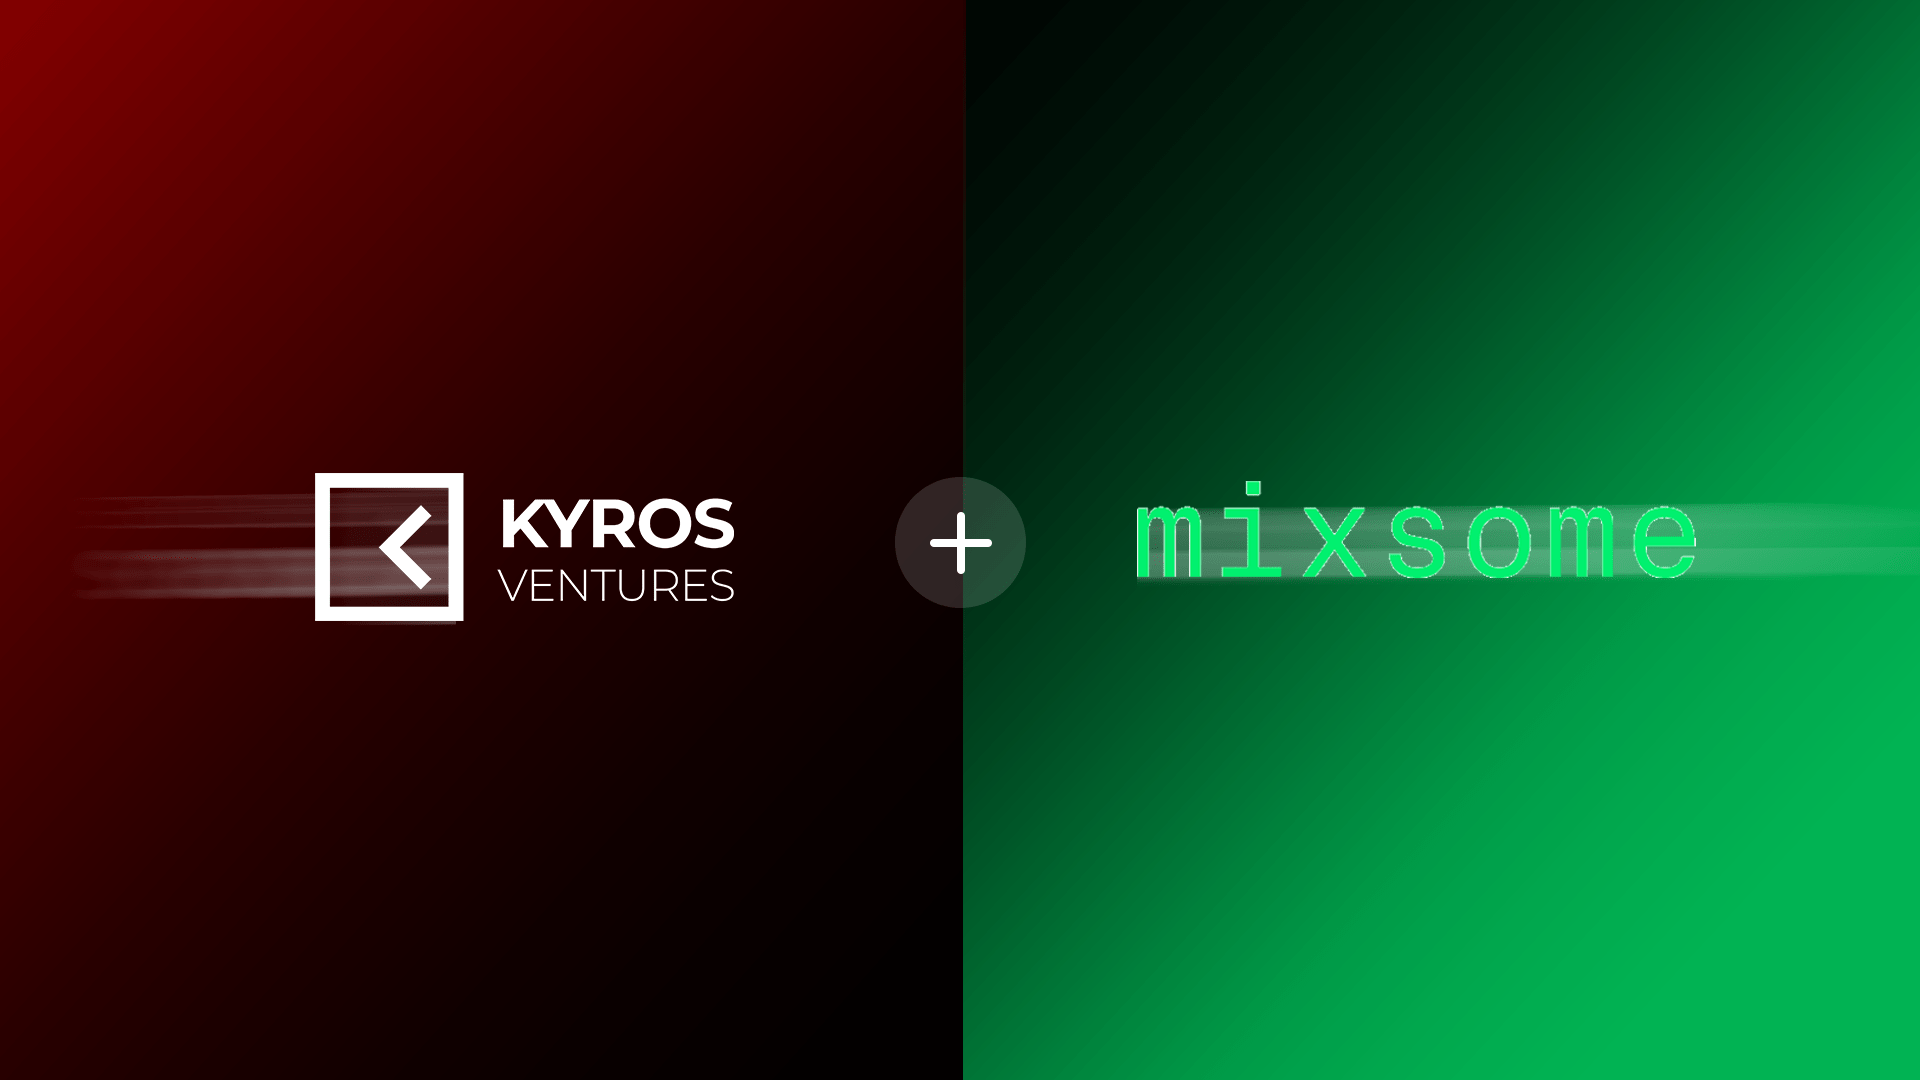 Kyros Ventures joined in Mixsome fundraising round of $2.7M